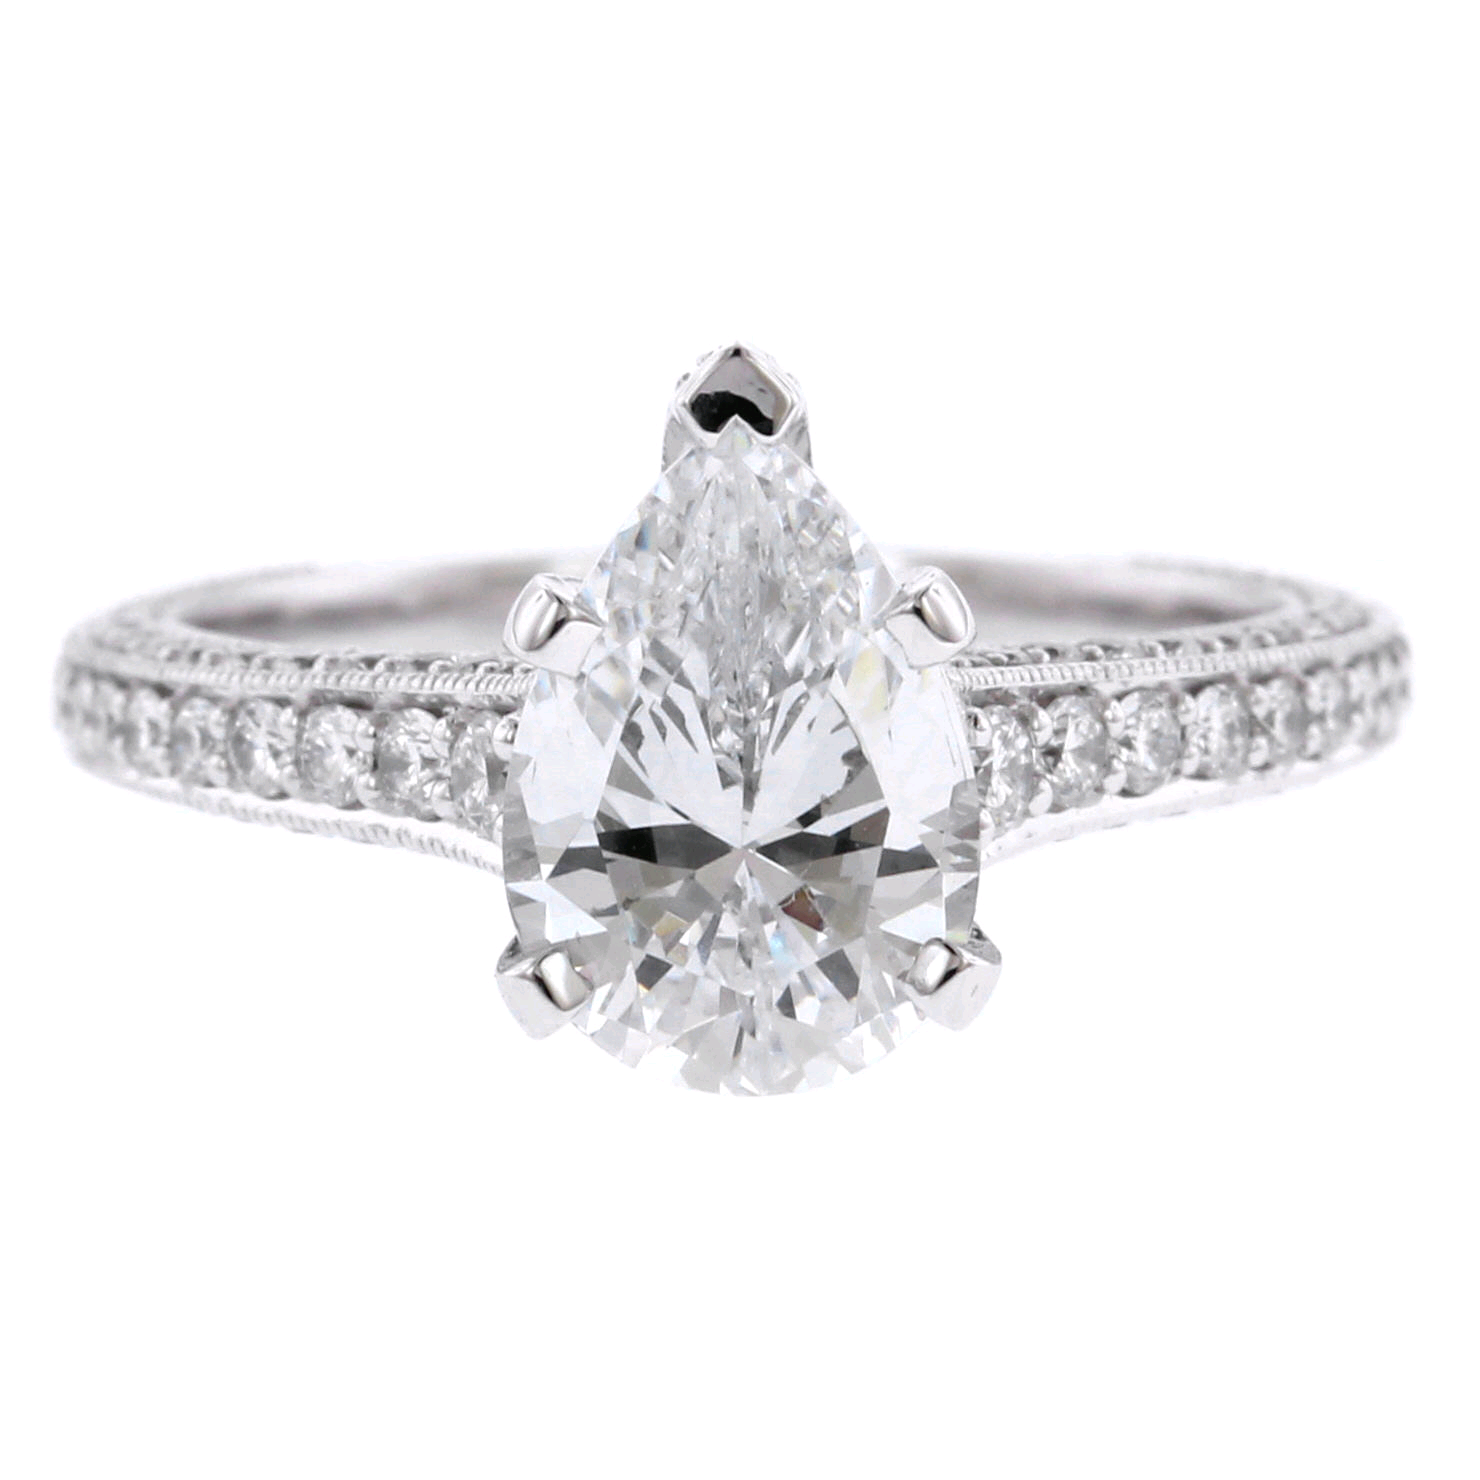 Platinum Pear Shaped Classic Engagement Ring Setting